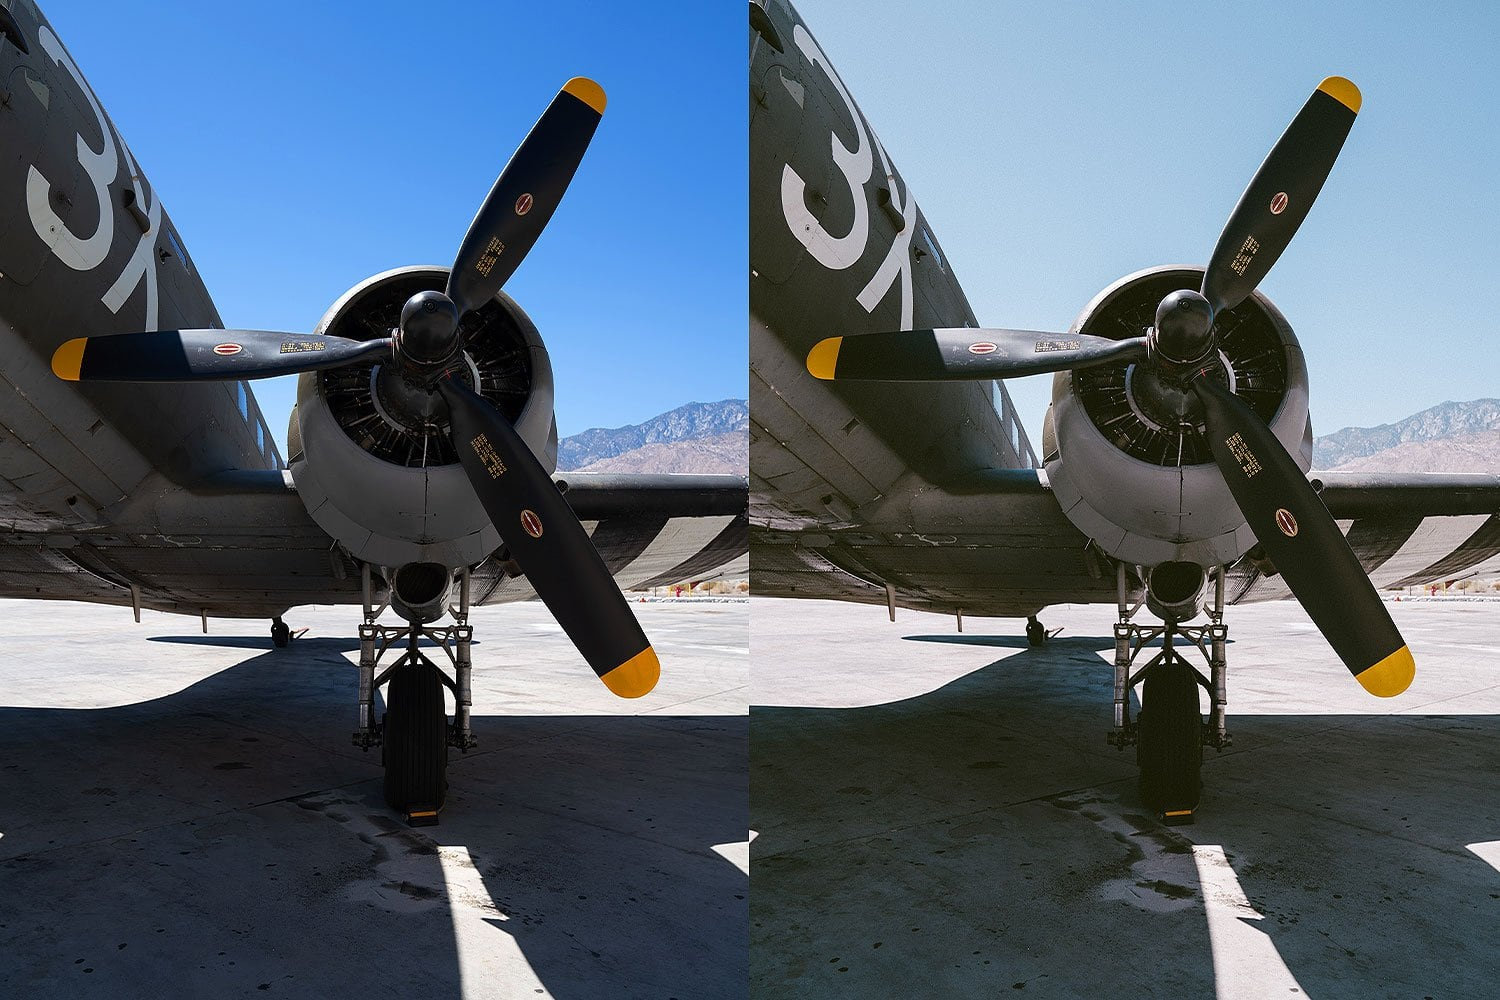 Beautiful-Lightroom-Presets-and-Profiles-Palm-Springs-War-Bird-Before-and-After-Presetpro.com